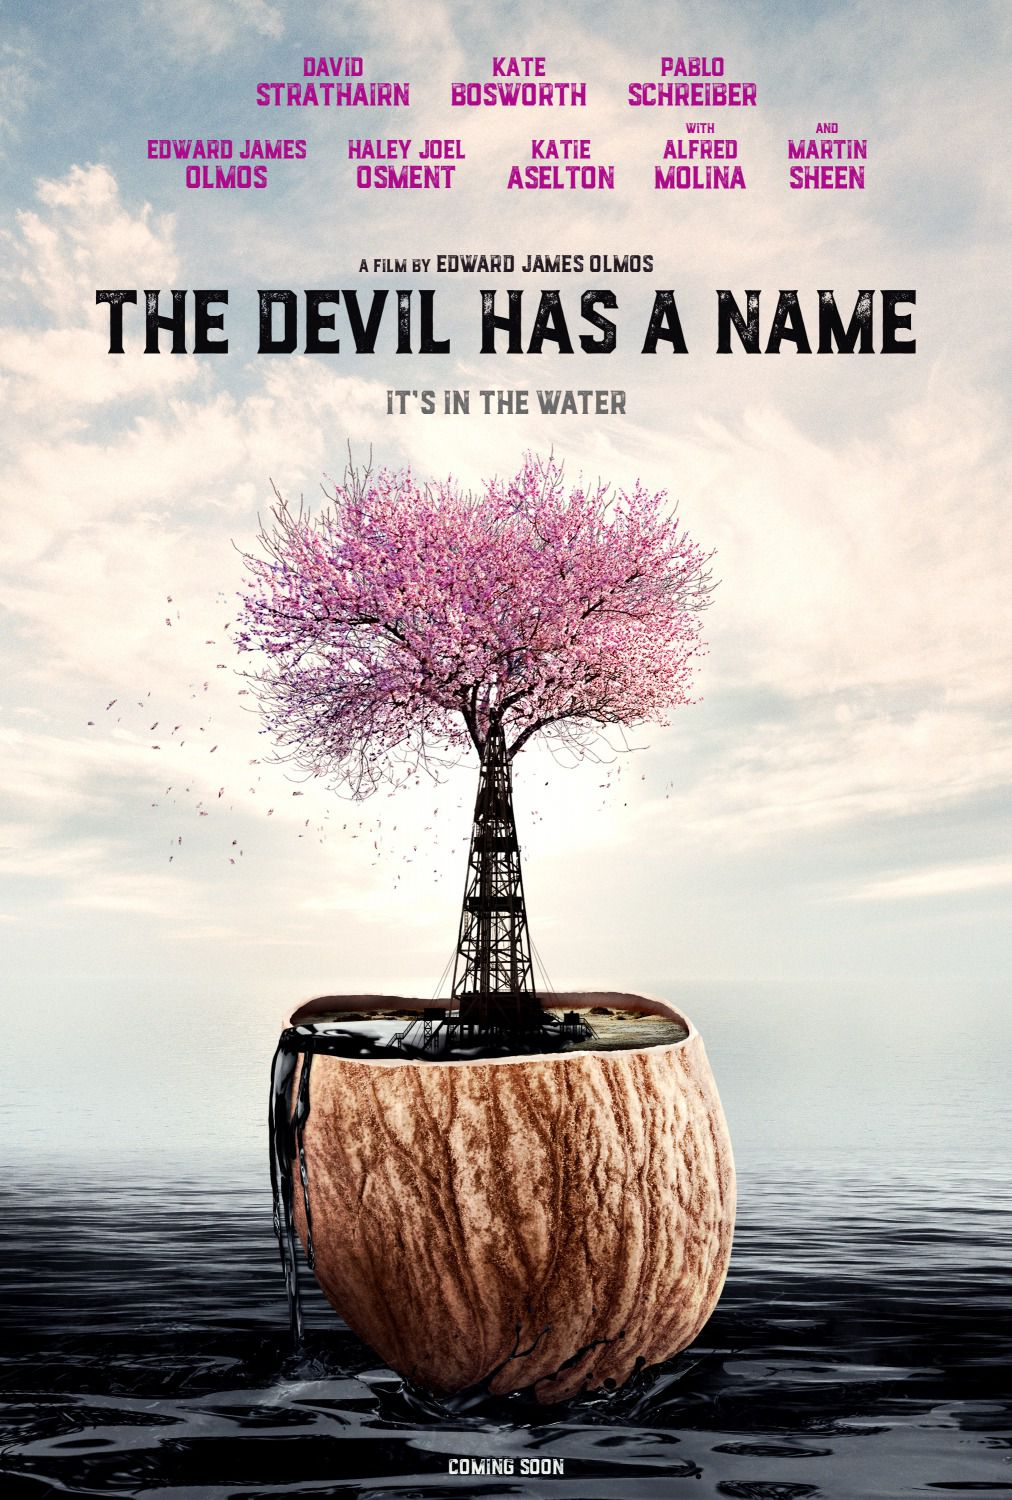 The Devil has a Name - Cast: David Strathairn, Kate Bosworth, Pablo Schreiber, Edward James Olmos, Haley Joel Osment, Katie Aselton, Alfred Molina, Martin Sheen - film poster 2019